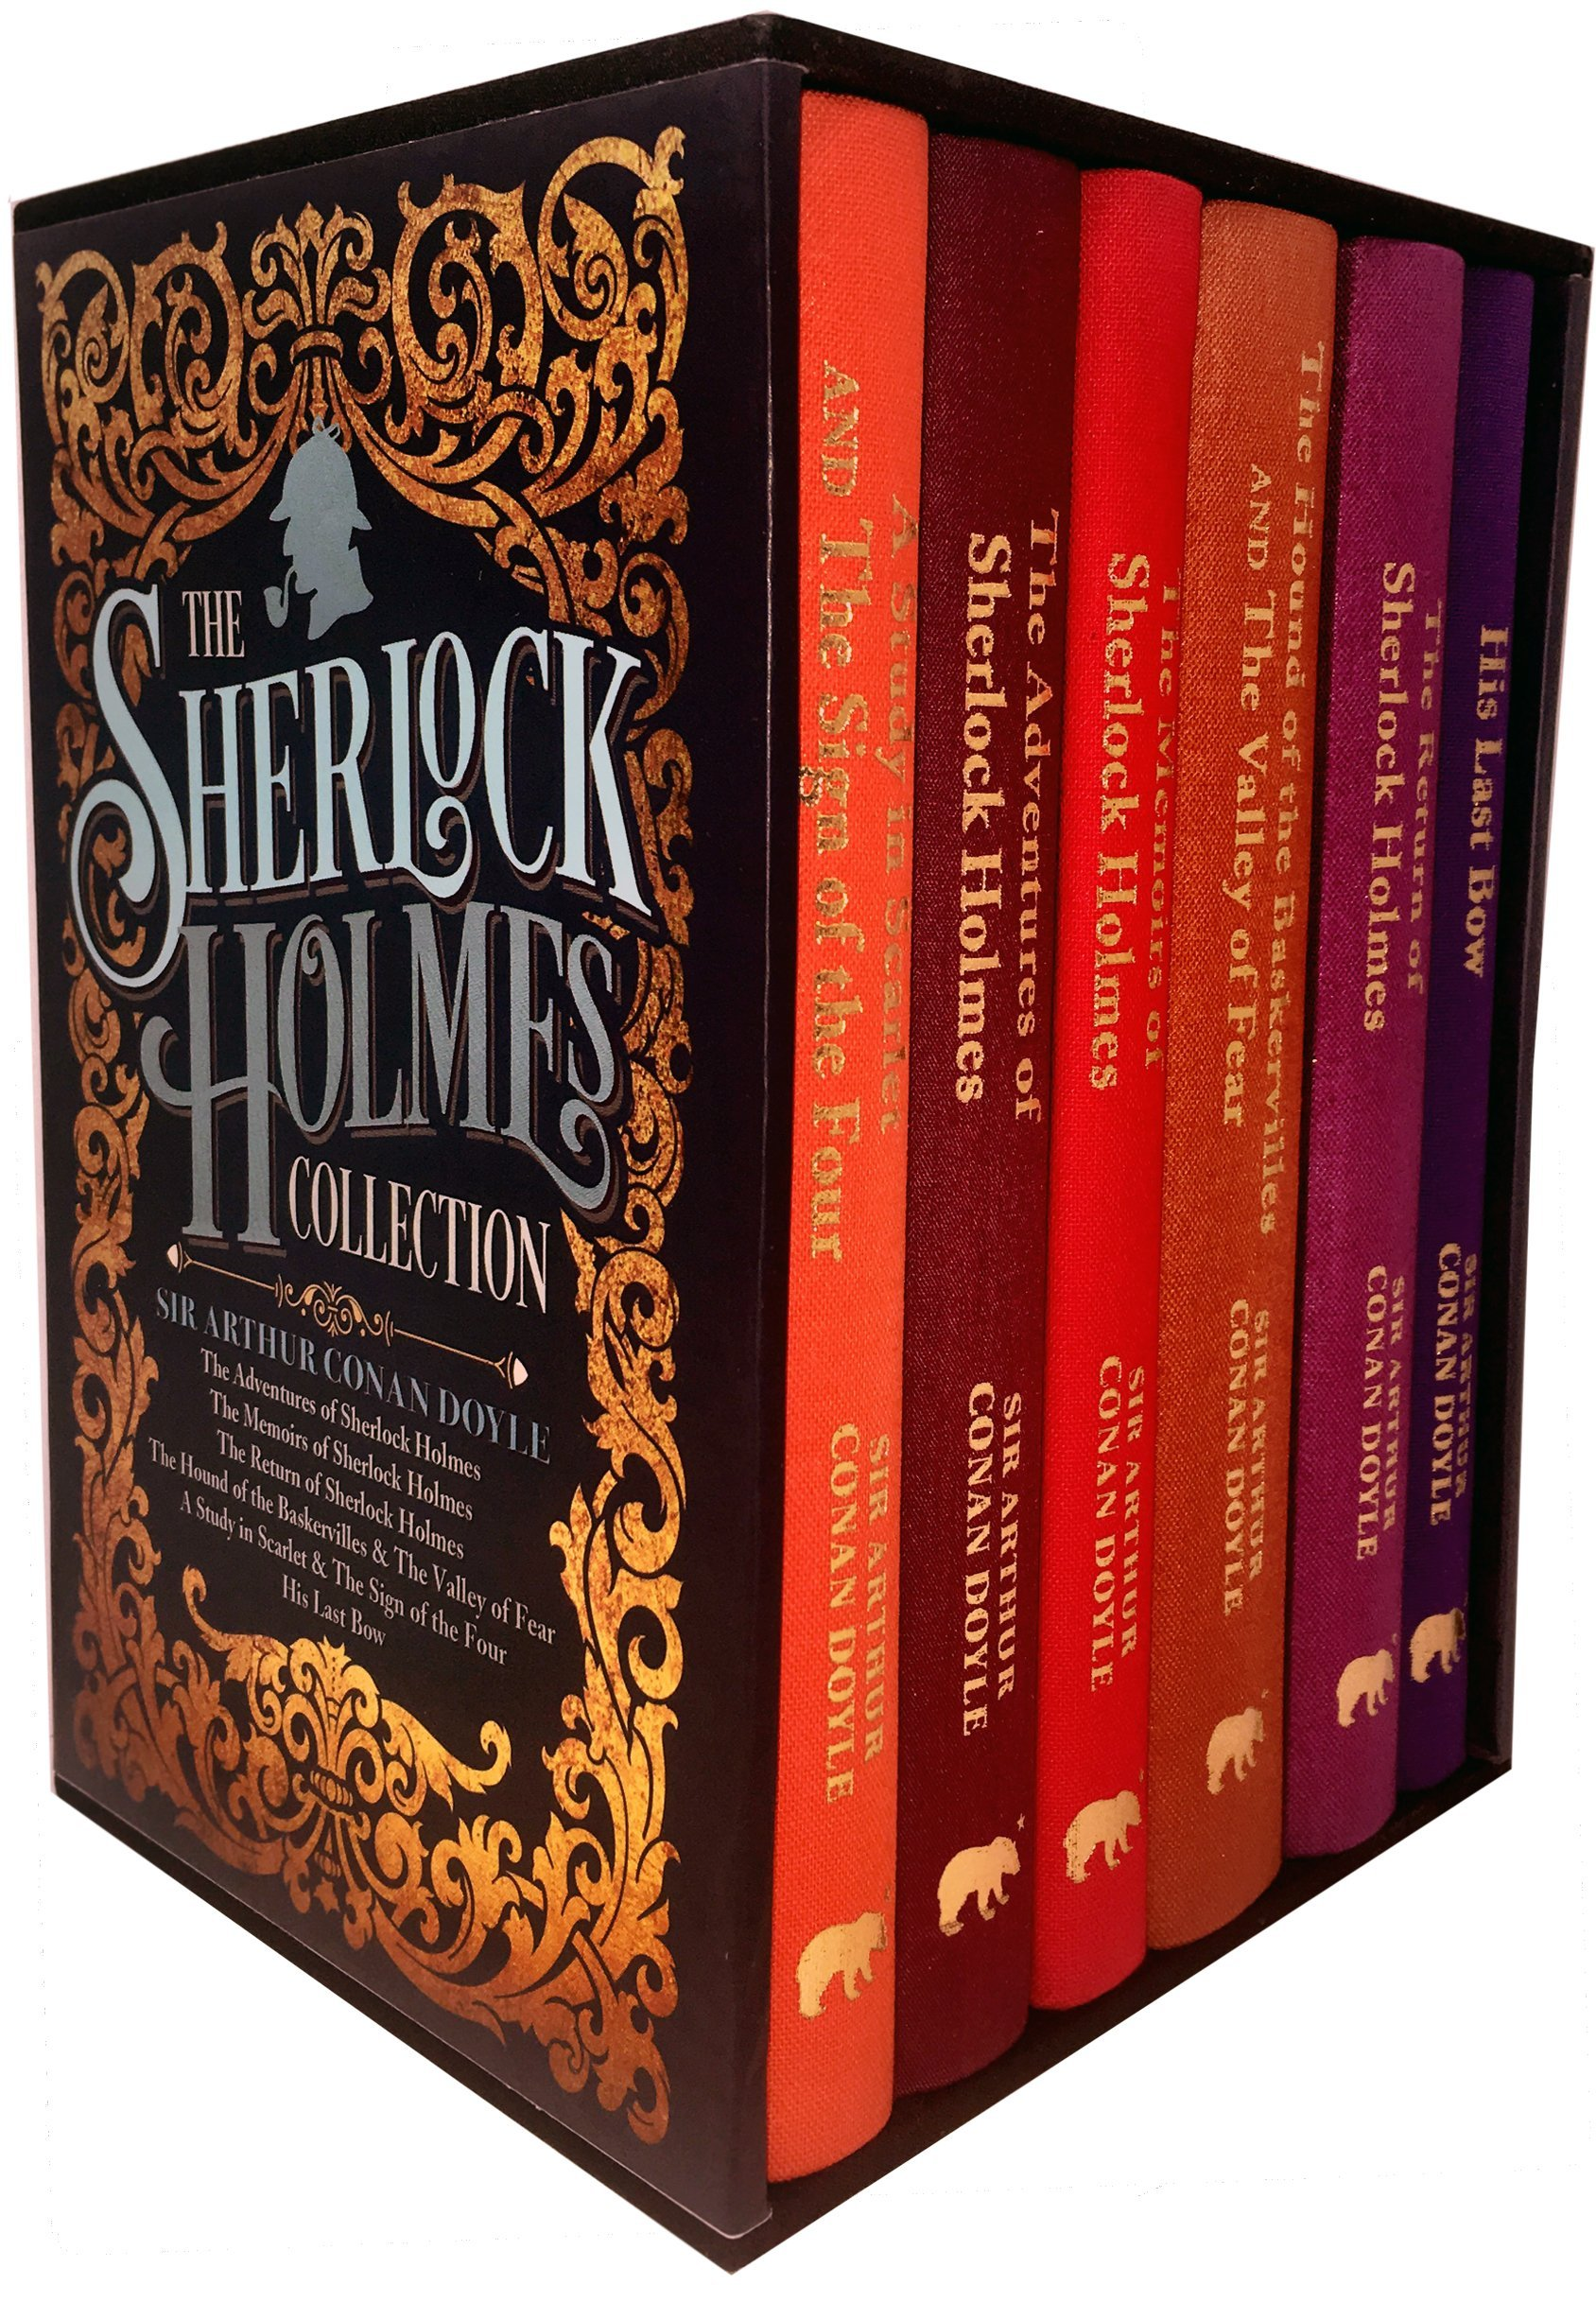 The Sherlock Holmes Collection 6 Books Box Set By Sir Arthur Conan Doyle  (His Last Bow, The Memories of Sherlock Holmes, A Study in Scarlet and The  Sign of The Four, The;  Mastermind Villain